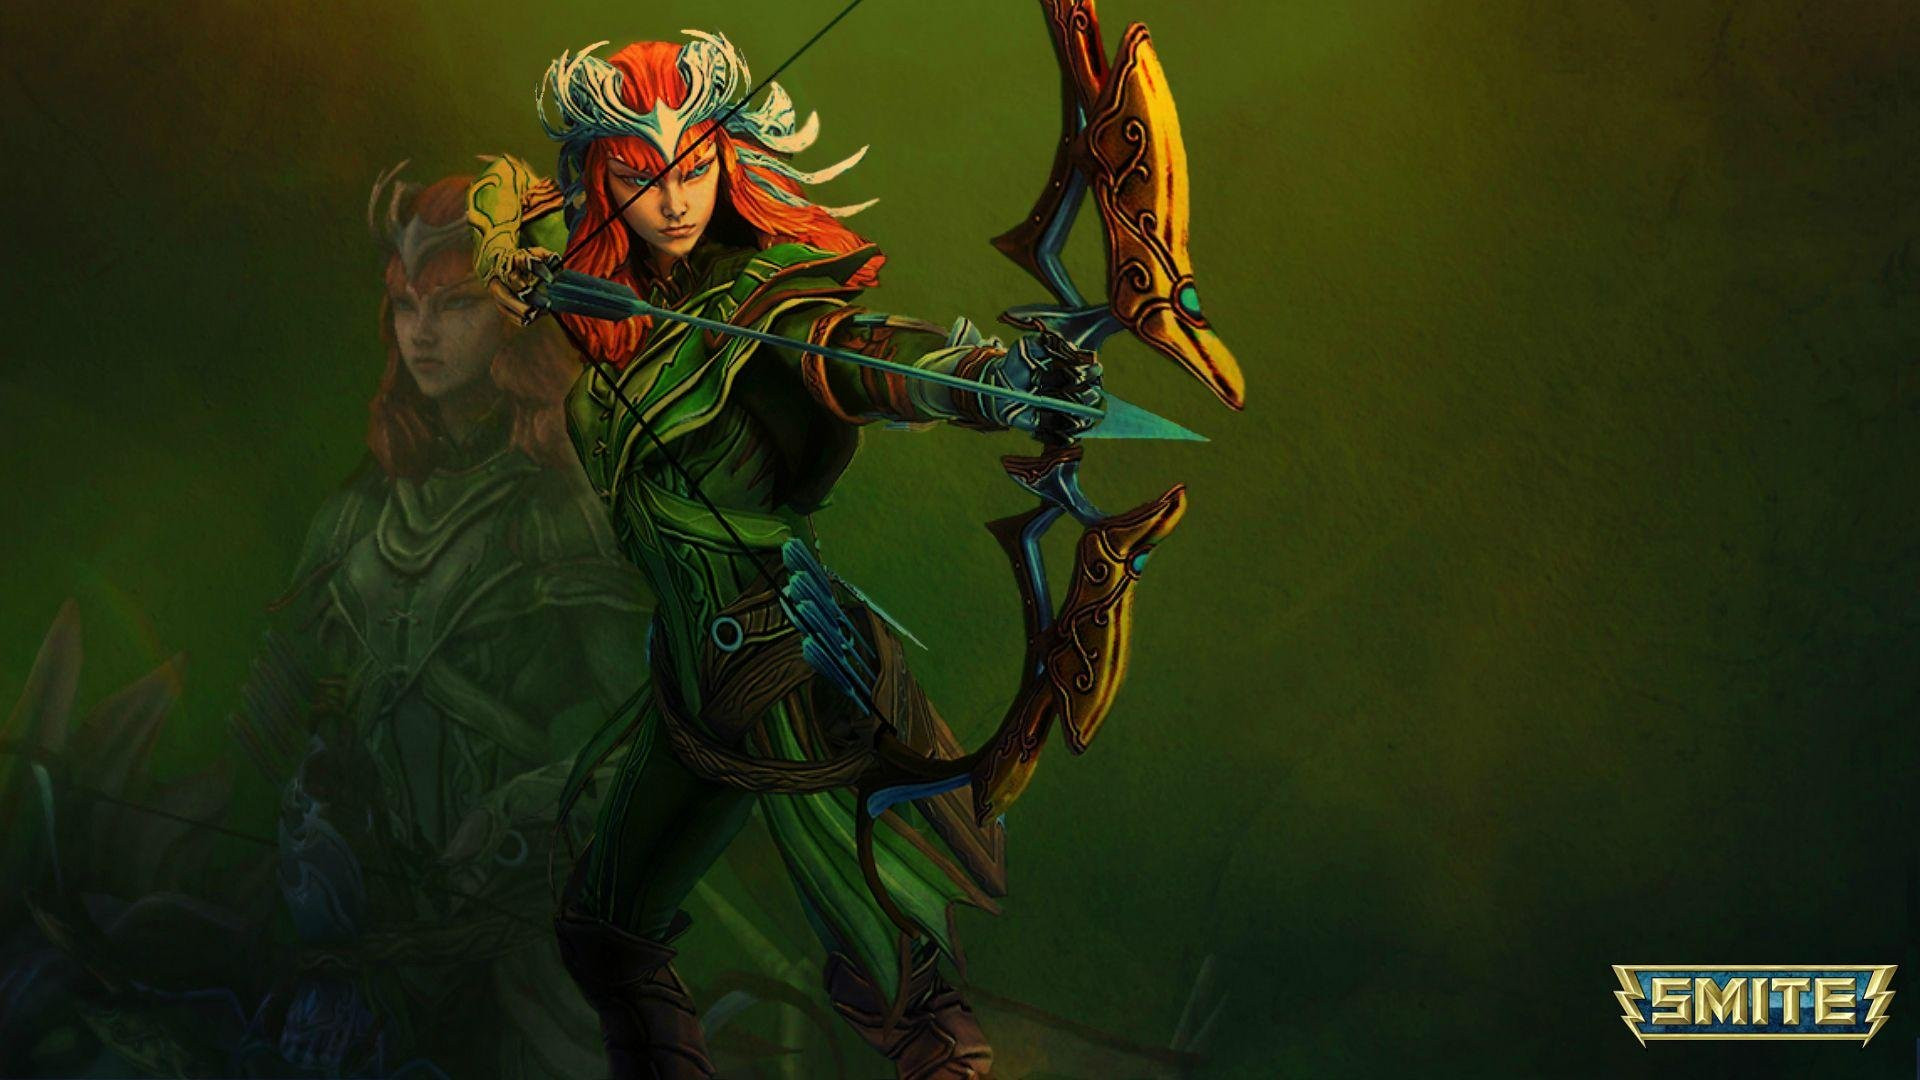 Smite Full HD Wallpaper and Background 1920x1080 ID525470 1920x1080